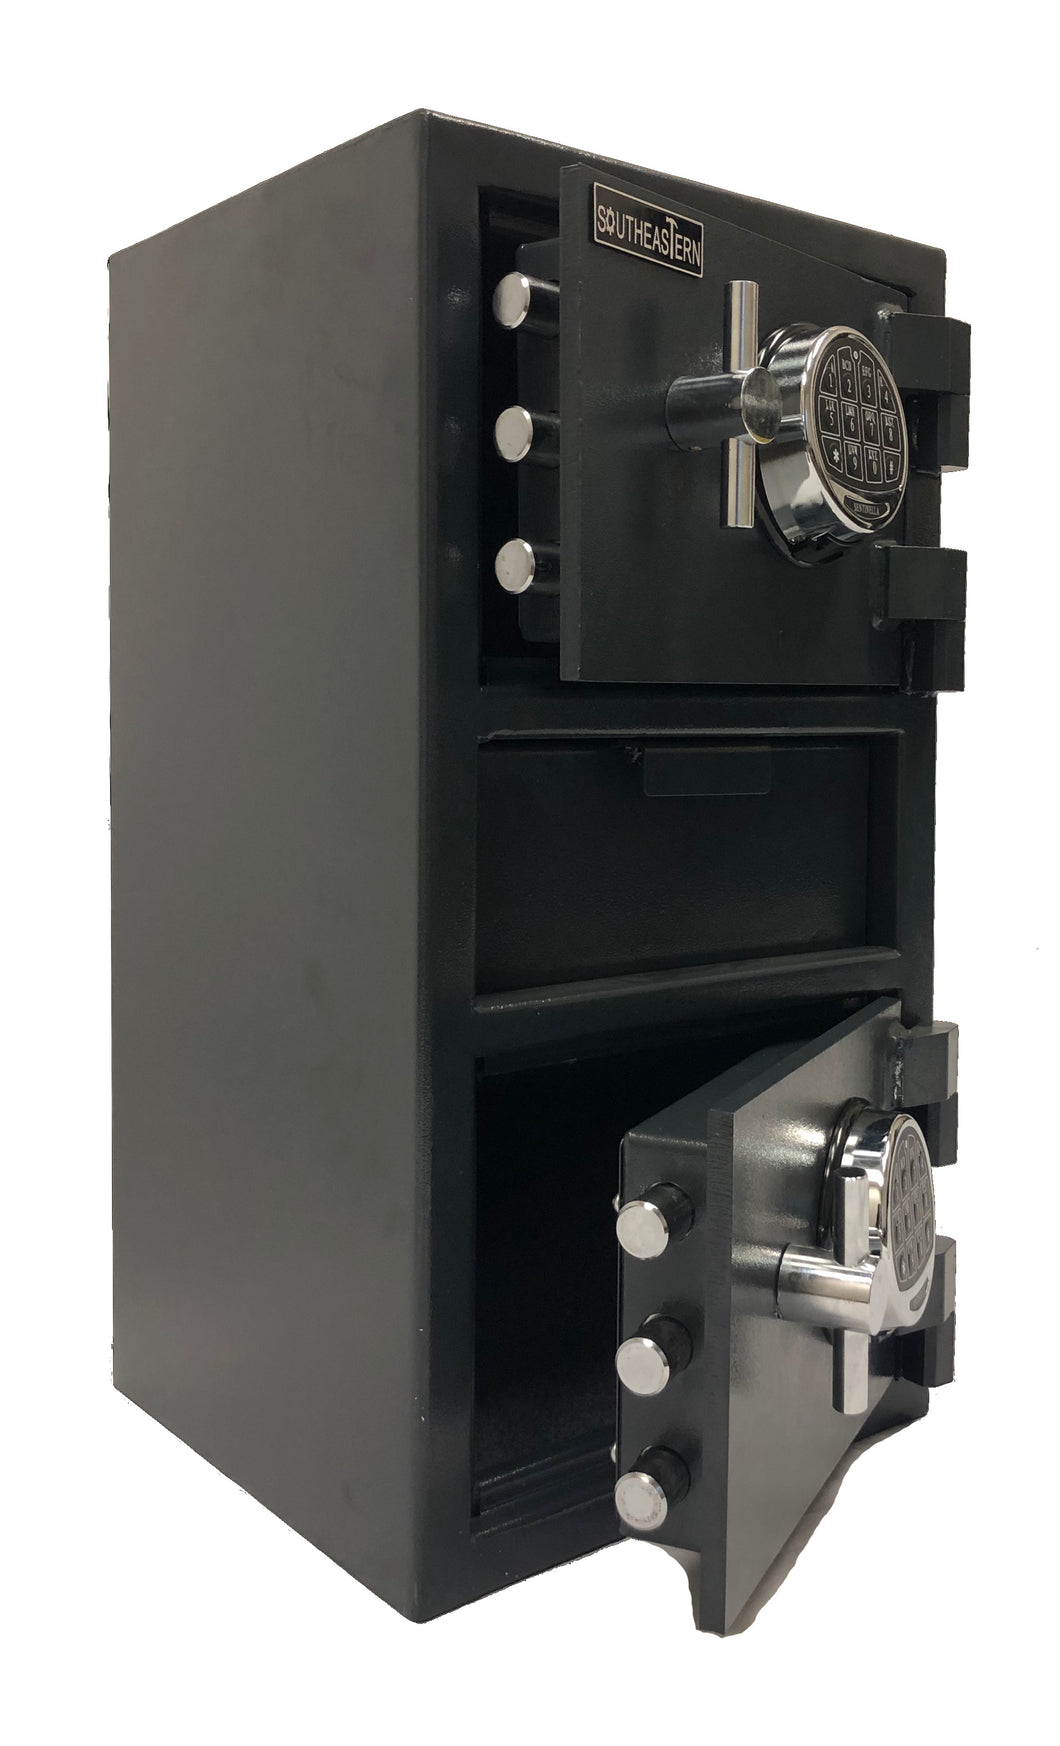 Southeastern F2714EEMD money drop depository security safe with digital lock with back up keys